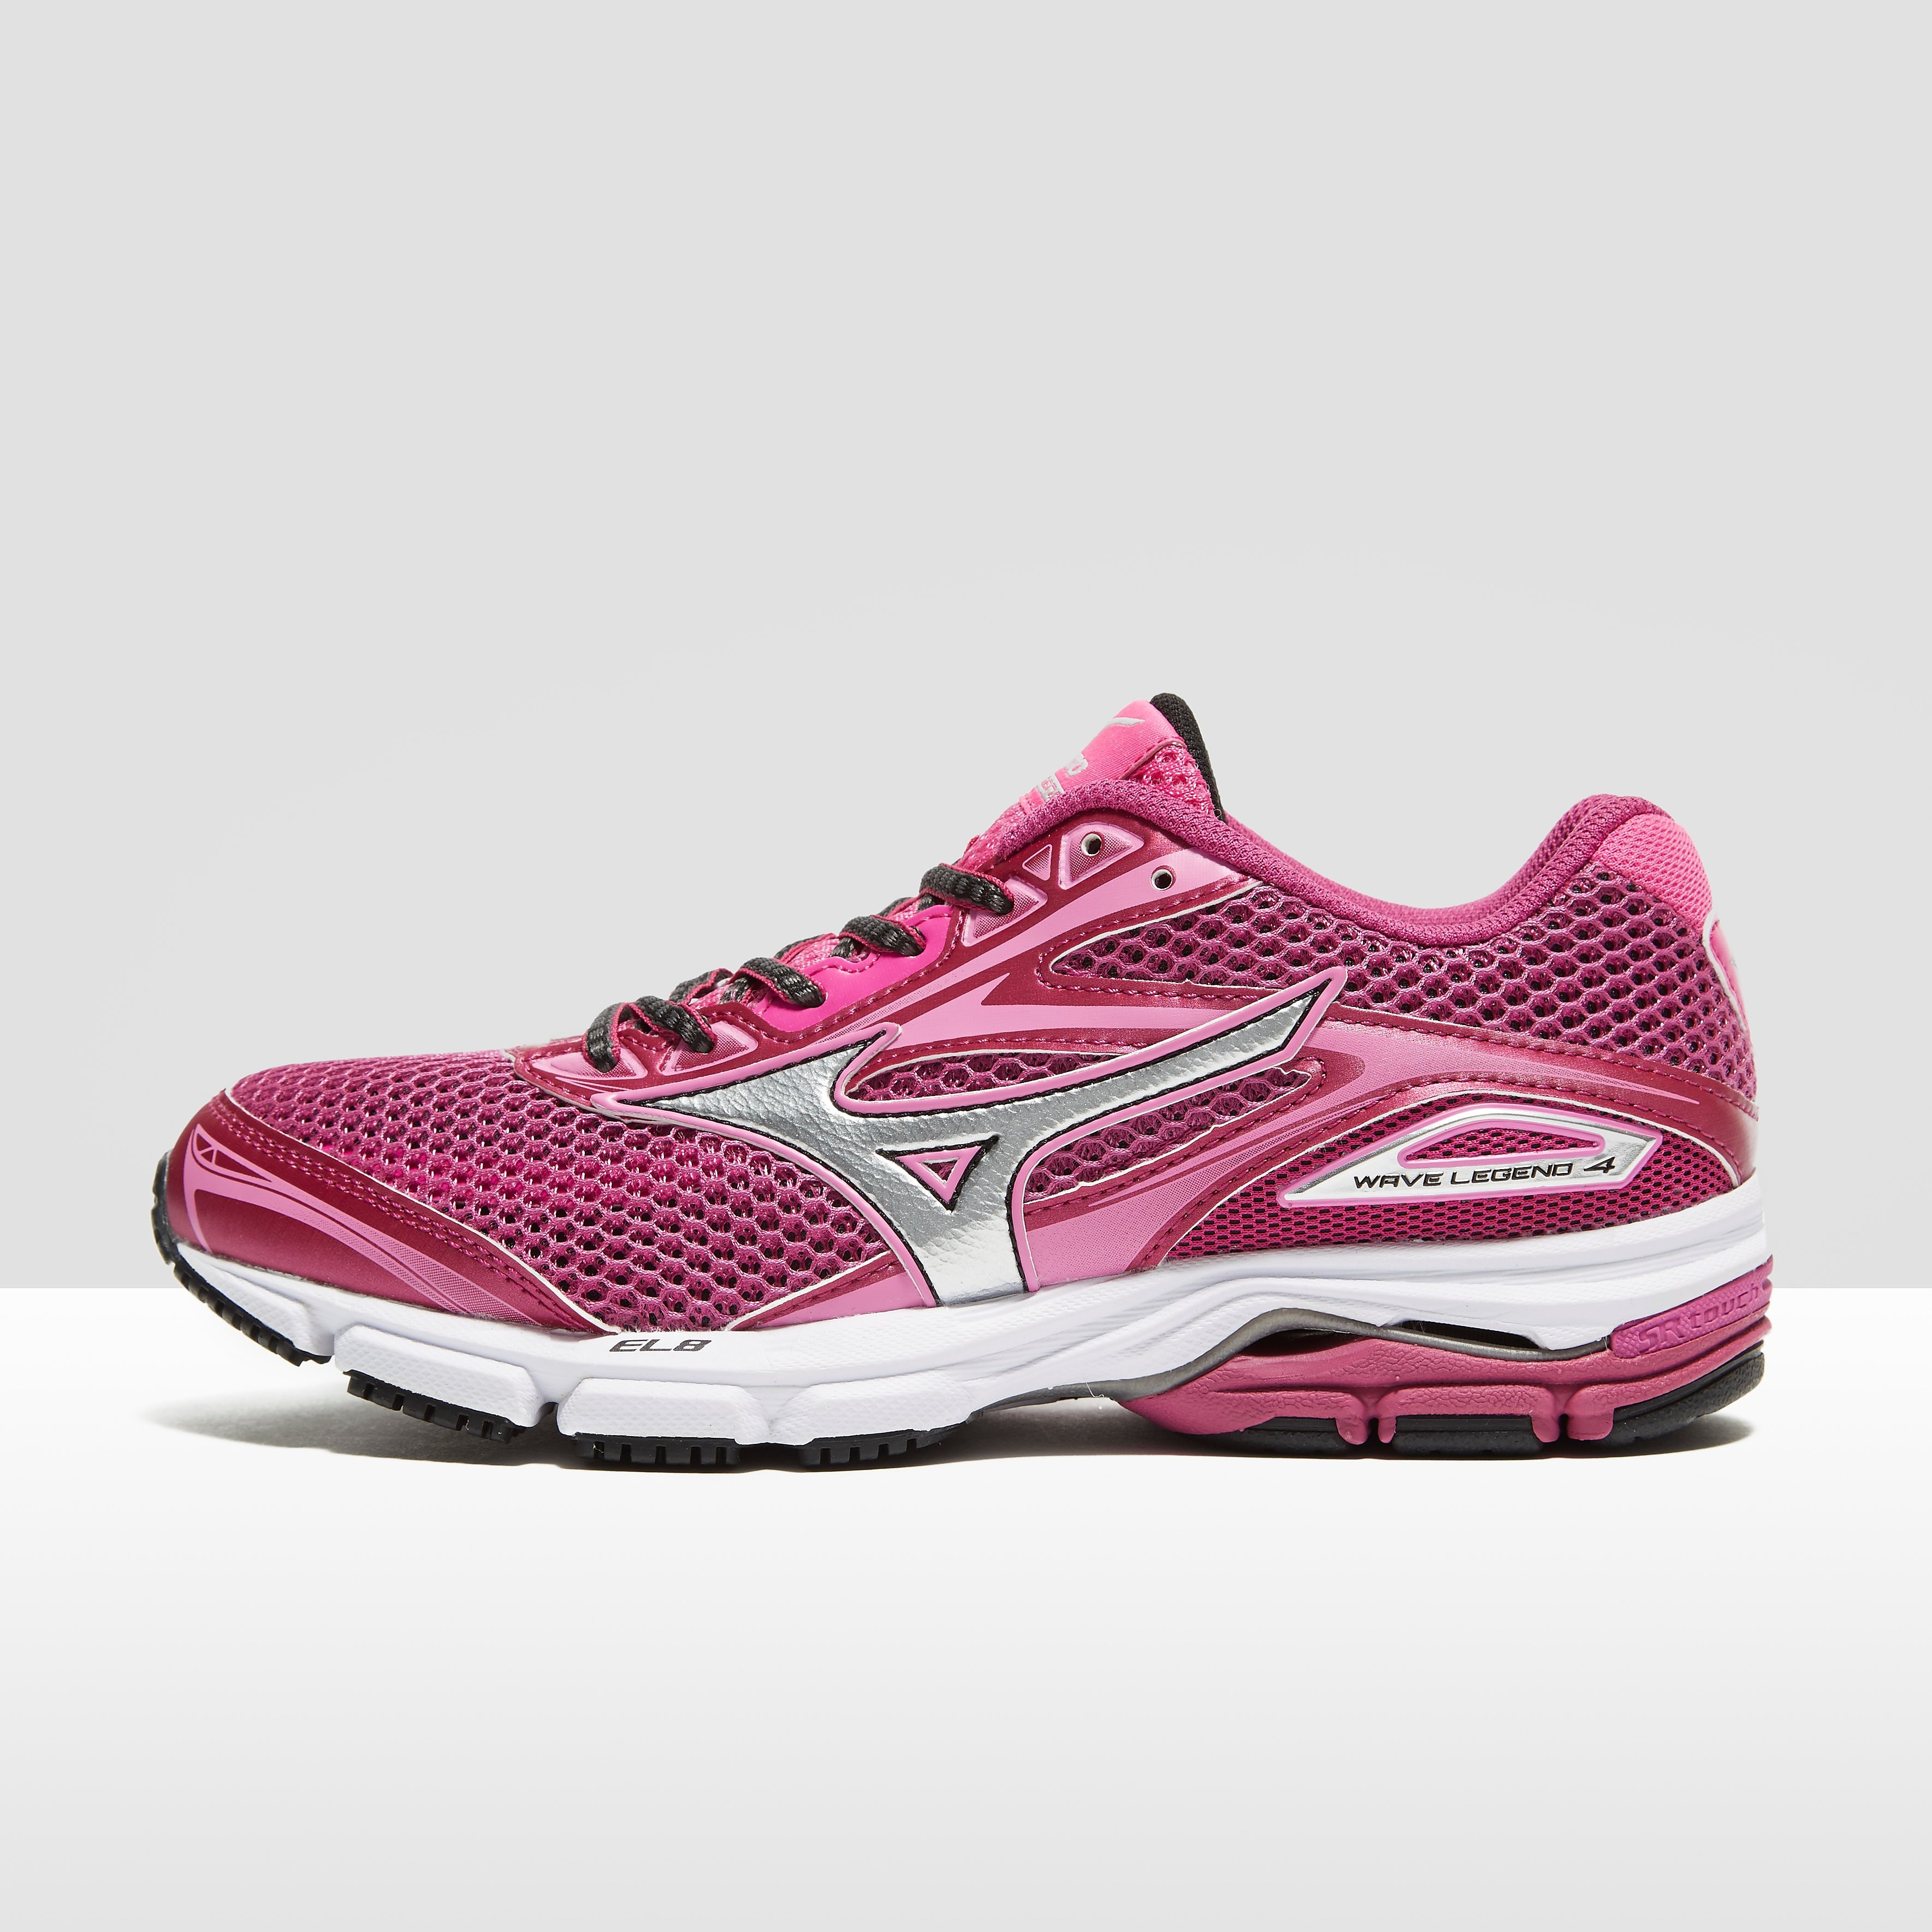 Mizuno Wave Legend 4 Women's Running Shoes